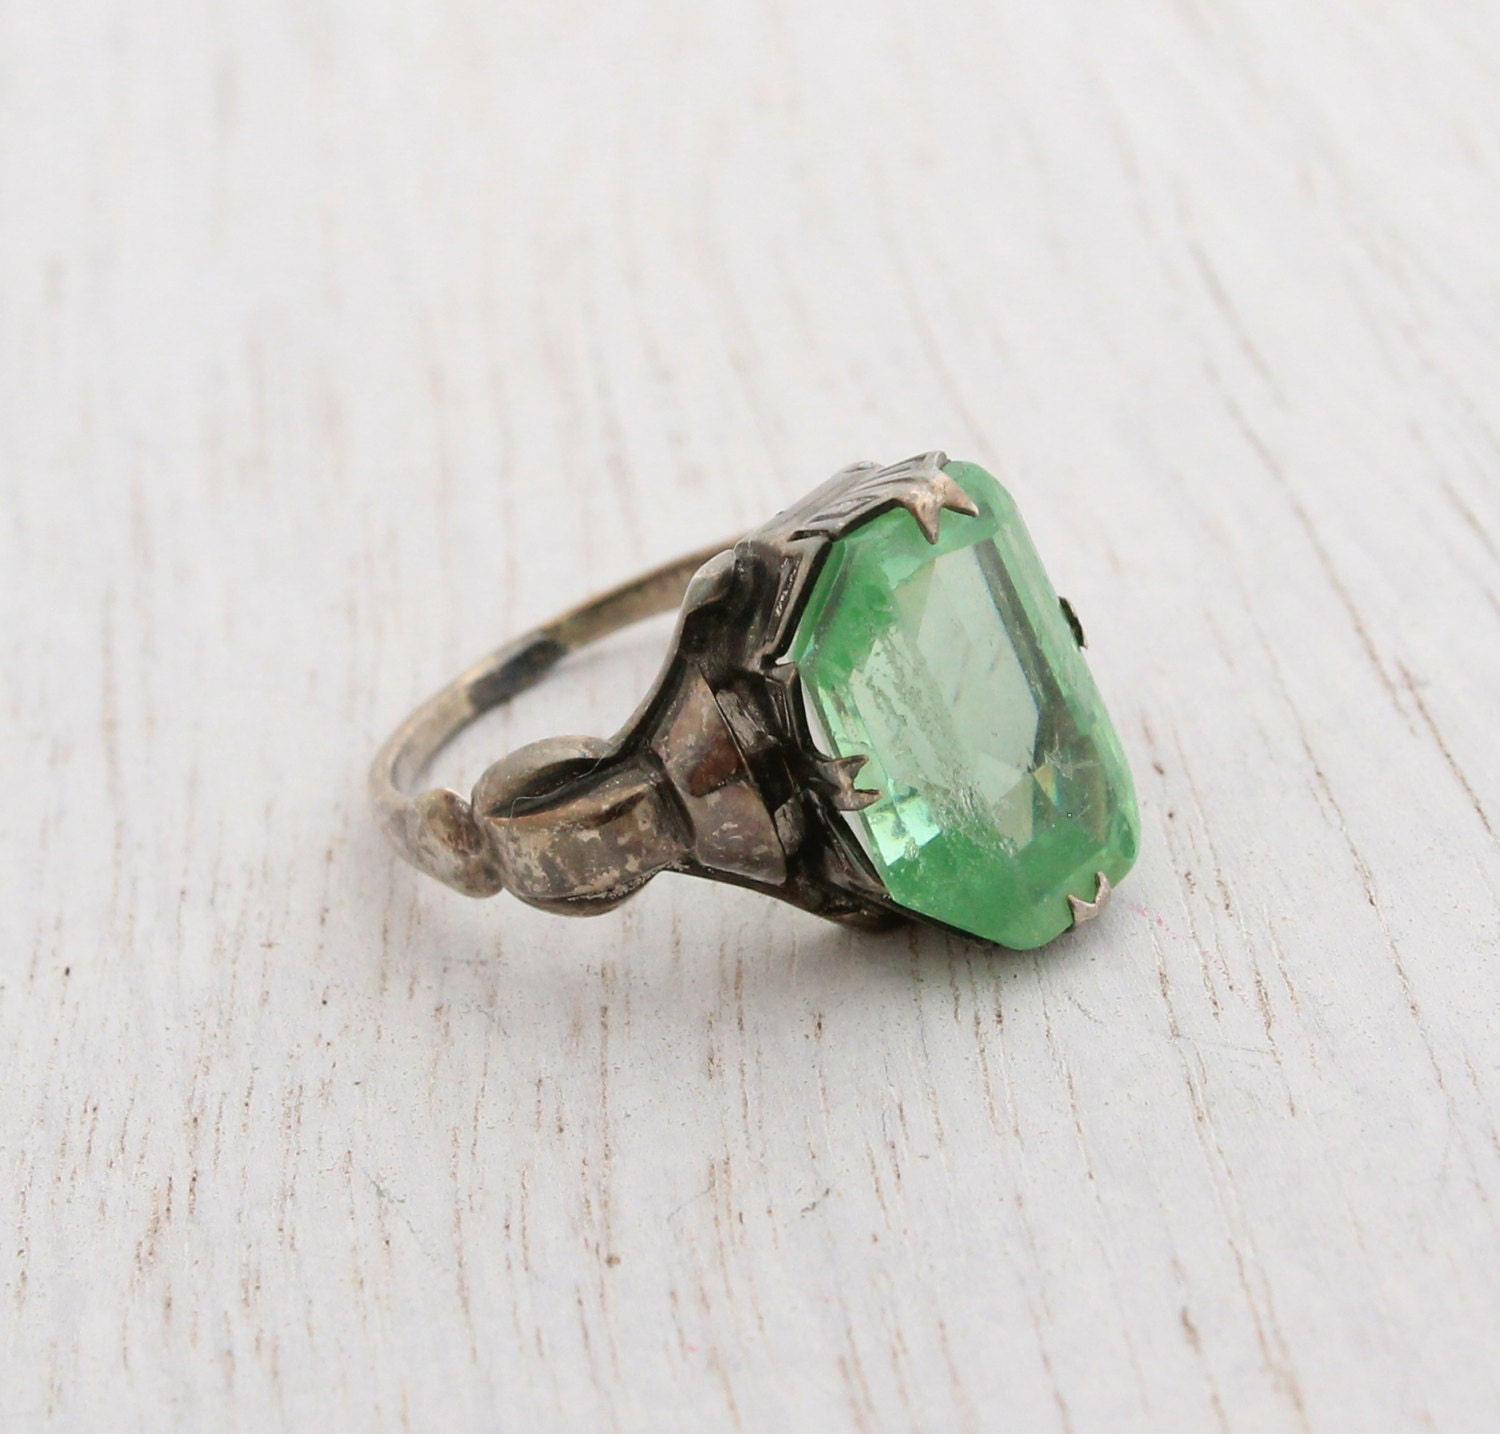 Antique Art Deco Sterling Silver Green Glass Ring Vintage